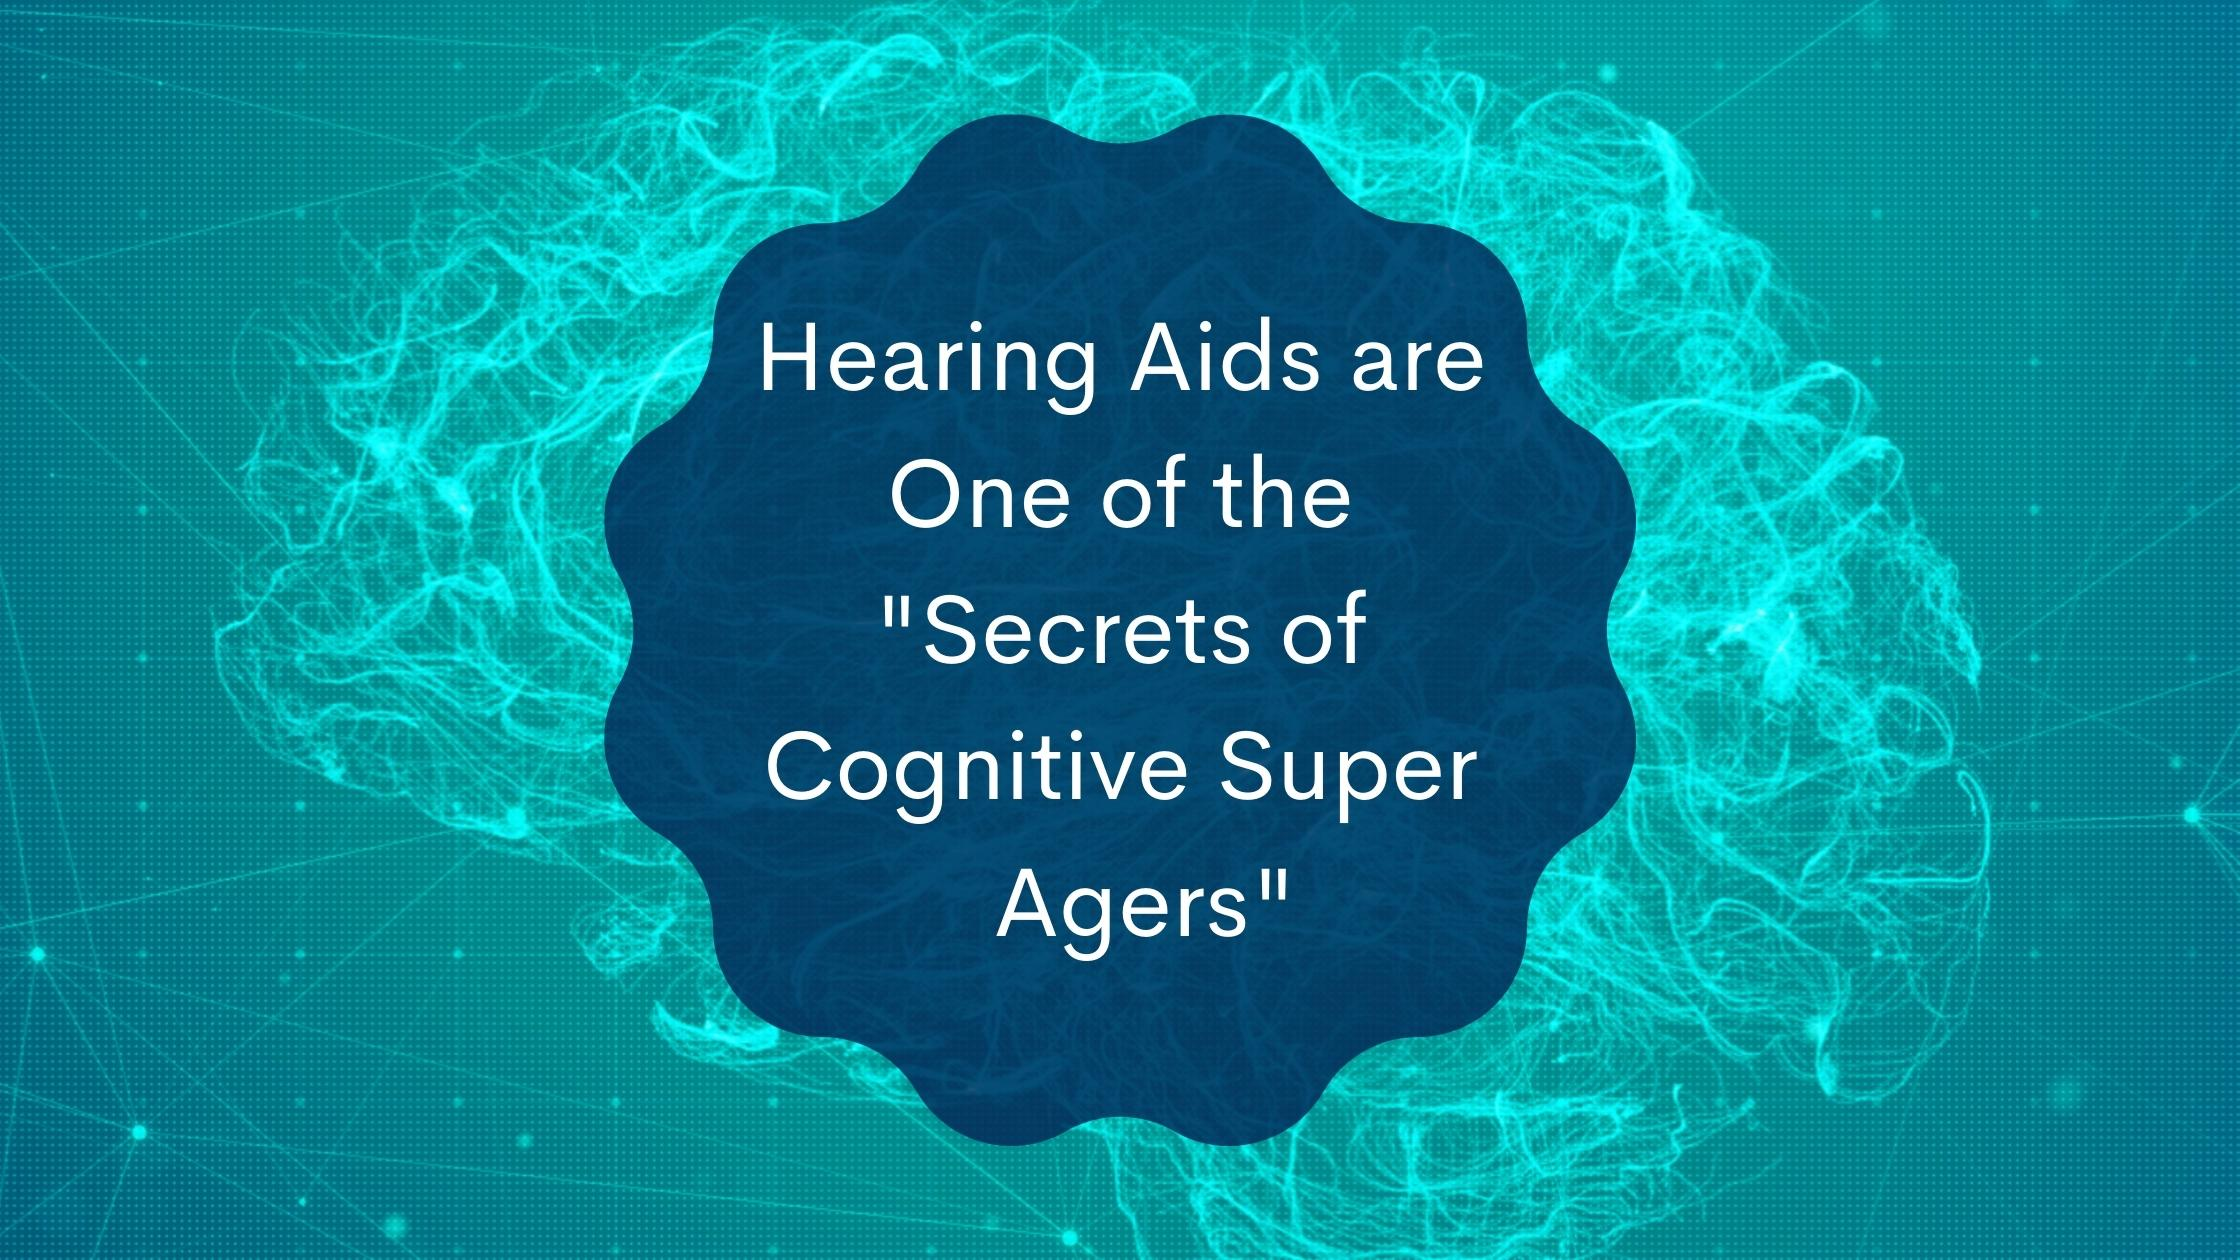 Hearing Aids are One of the Secrets of Cognitive Super Agers